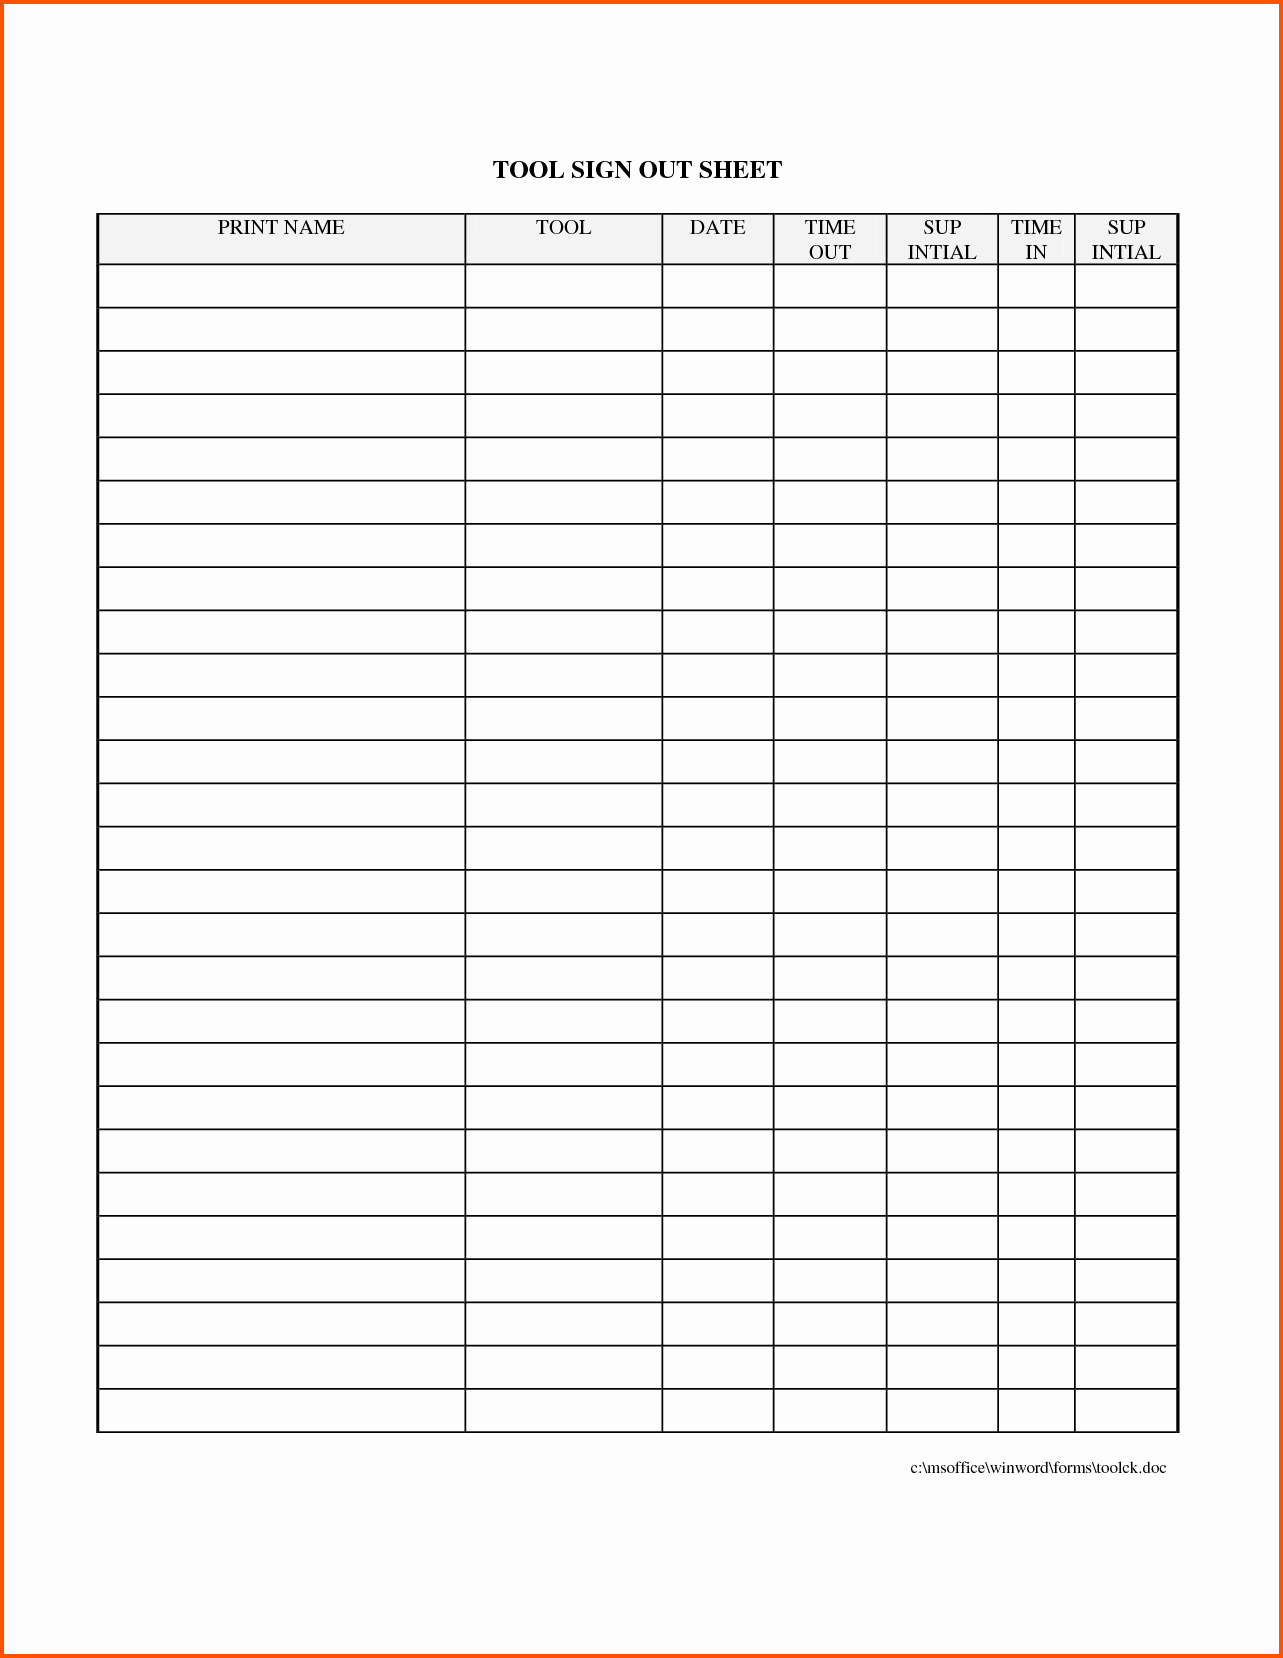 Sign In and Out Sheet Fresh 11 Sign Out Sheet